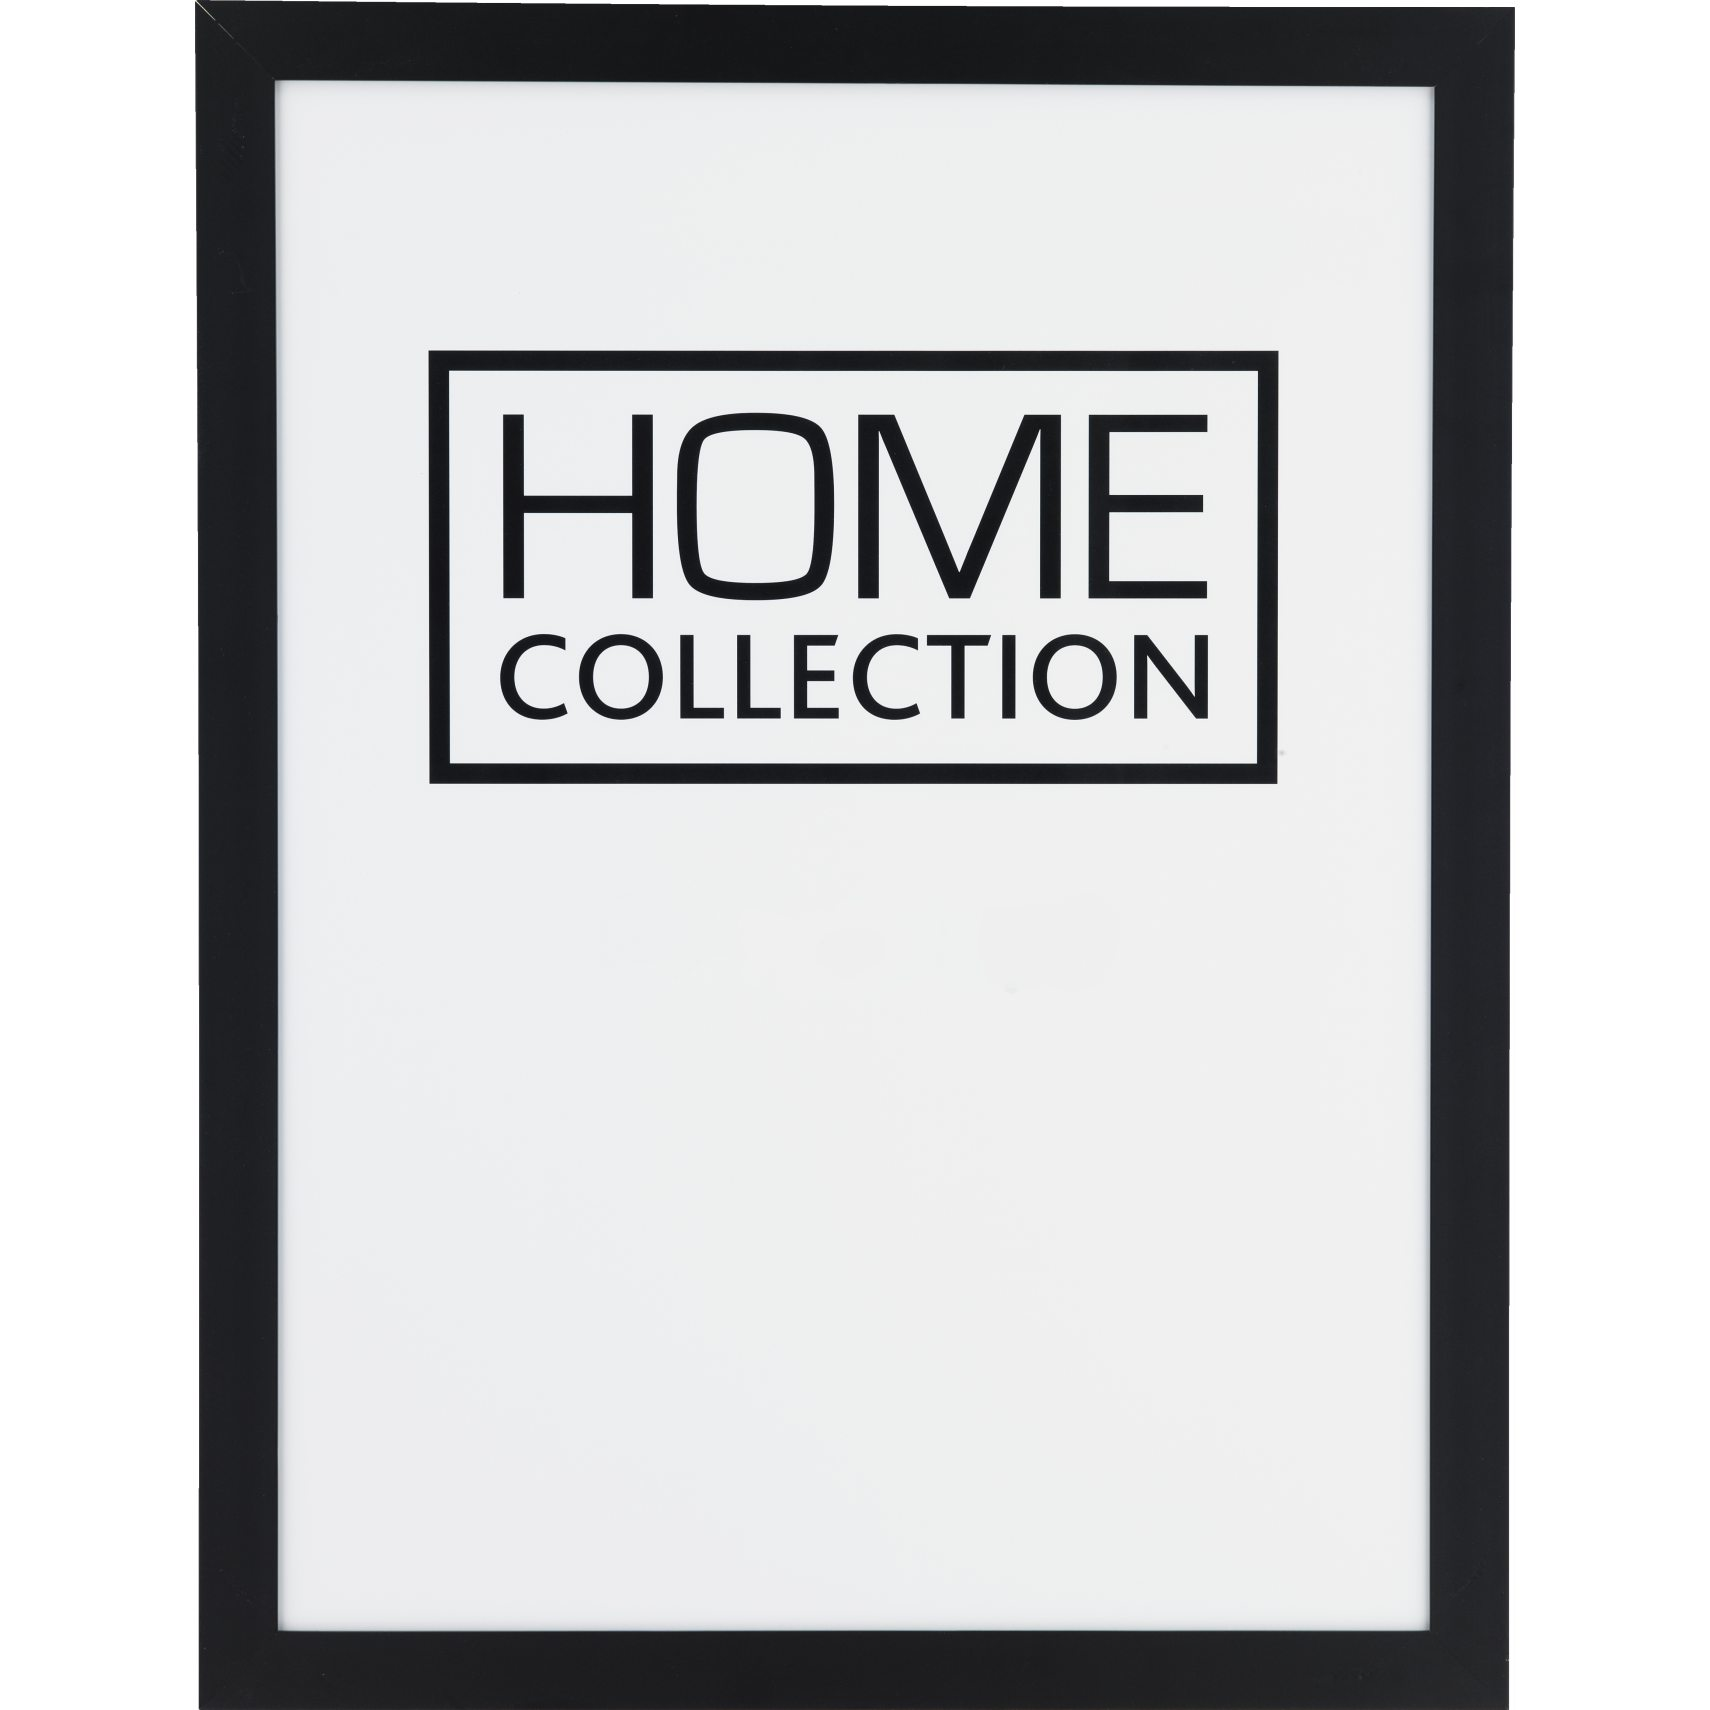 HOME COLLECTION Ram 60 x 80 x 2 cm - Svart träram